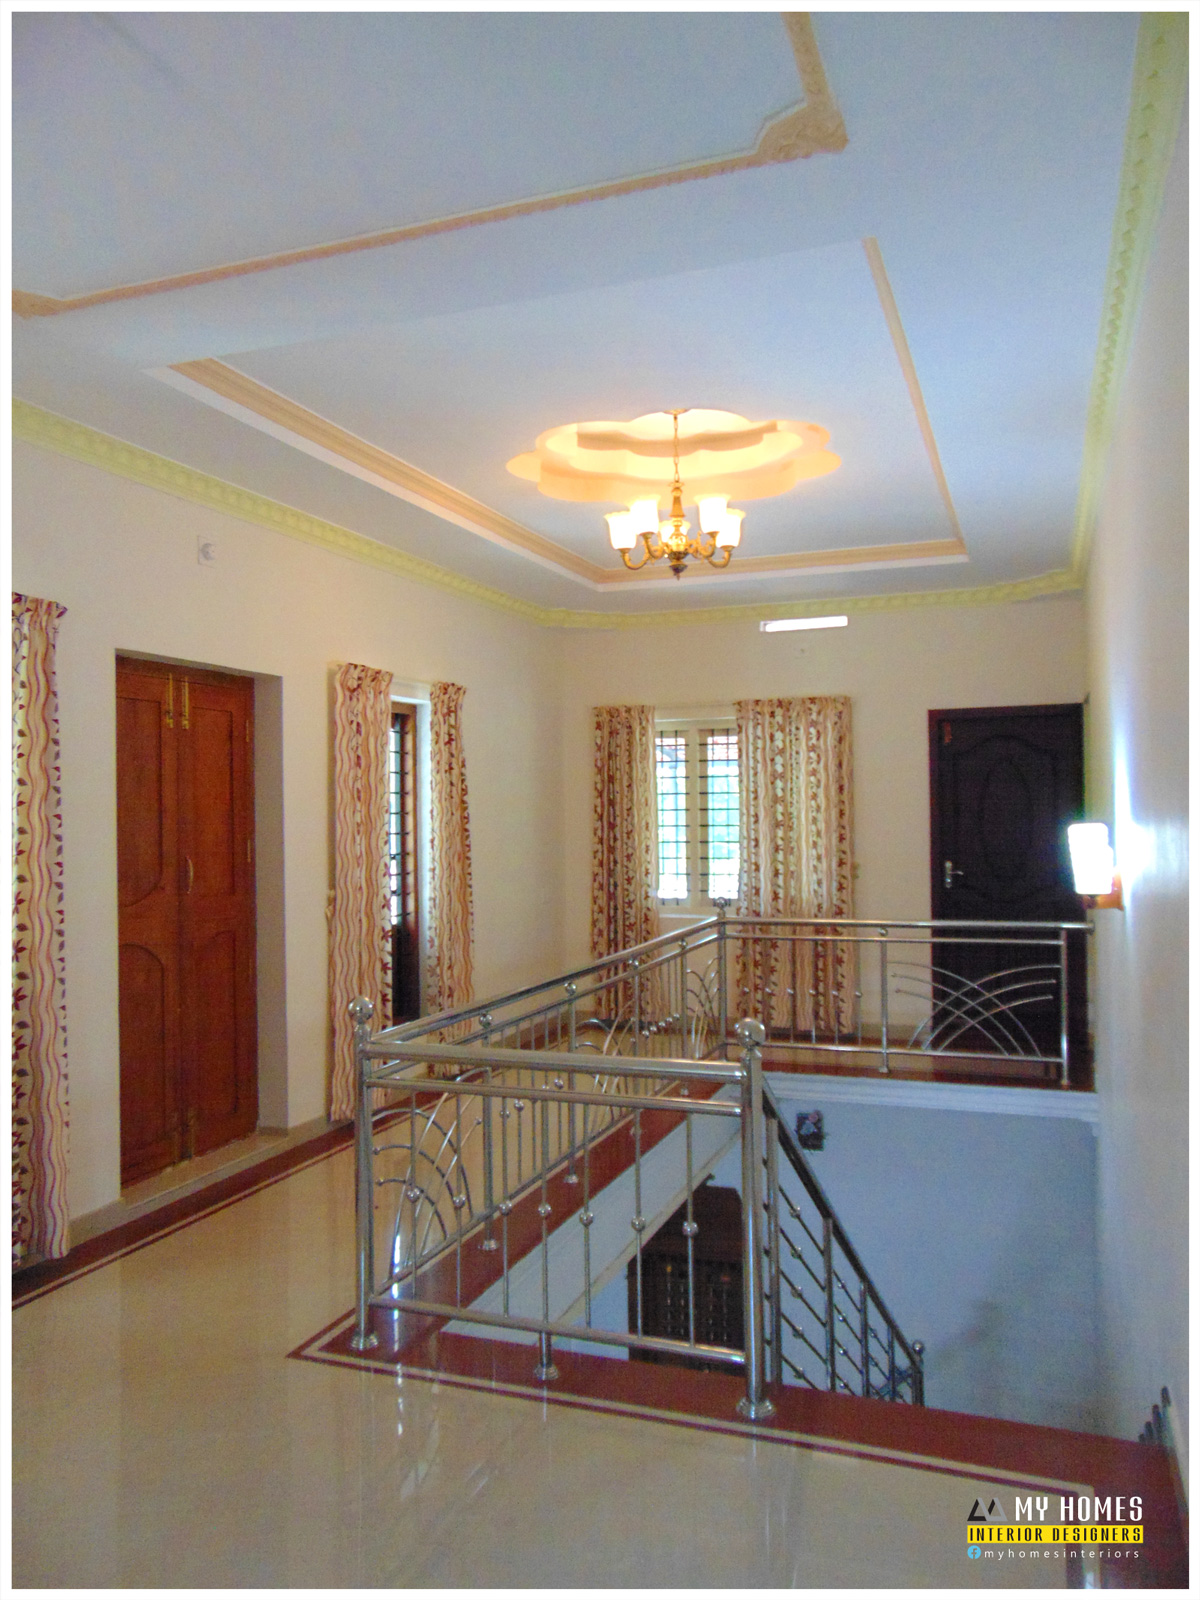 Kerala interior design ideas from designing company thrissur for Interior designs for homes pictures